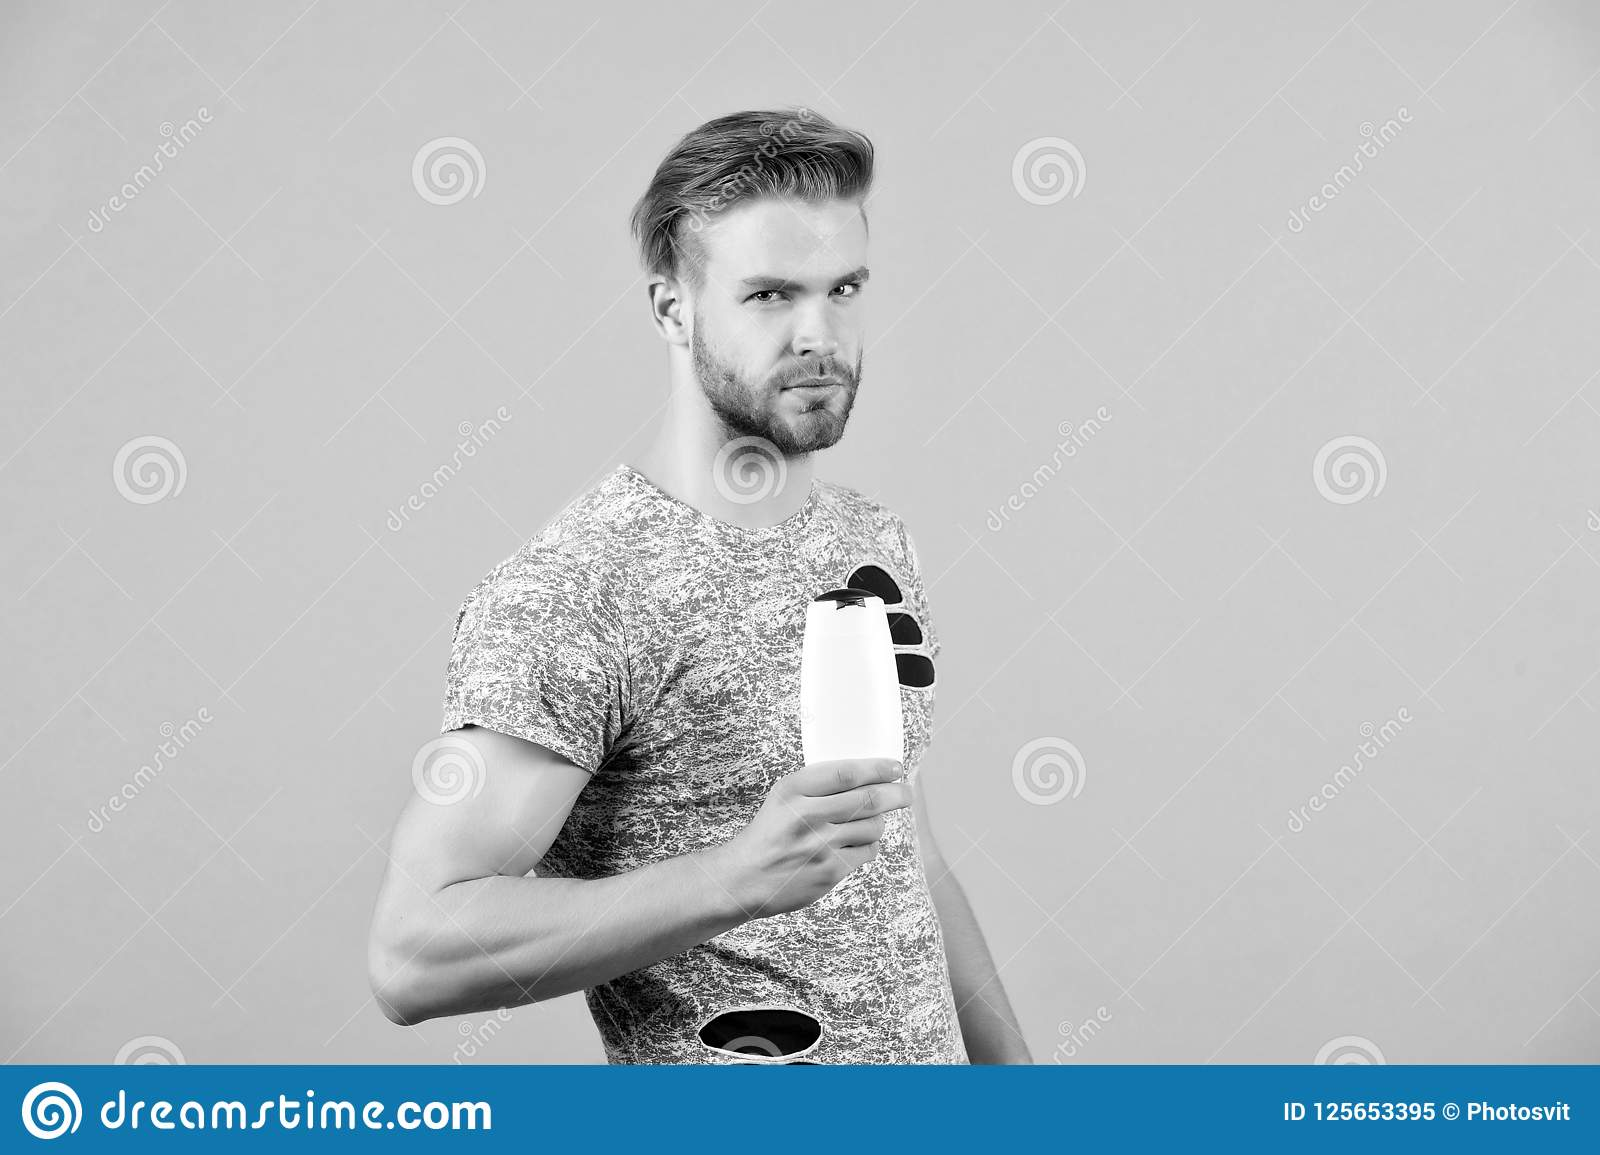 Man With Shampoo Or Gel Bottle In Hand Macho With Stylish Hair